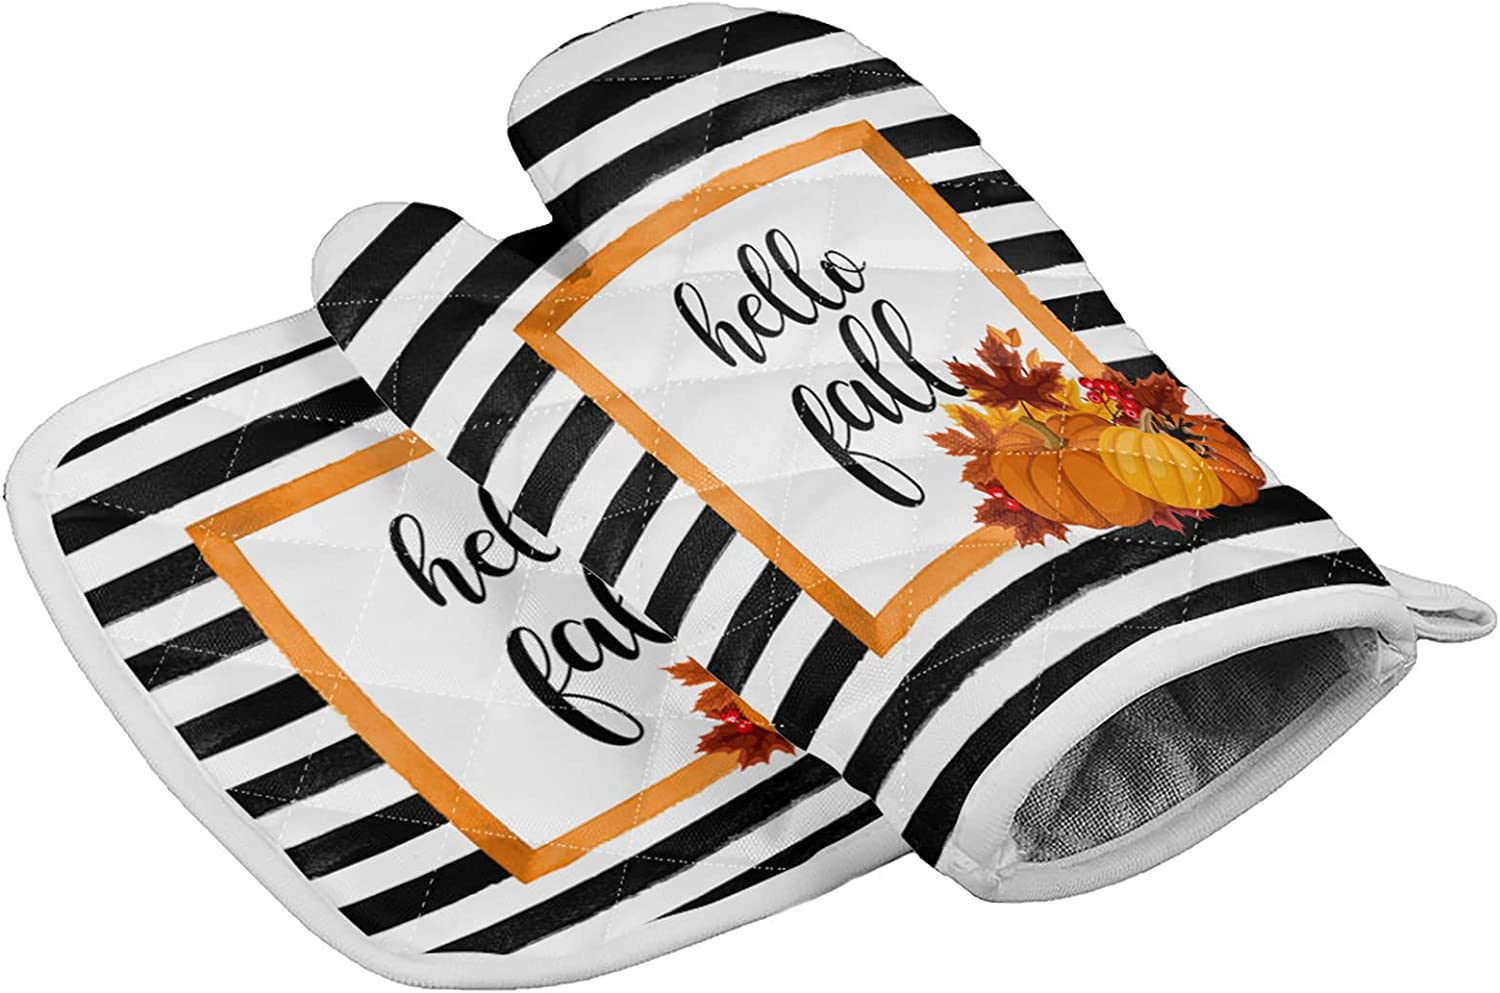 Thanksgiving Set of Oven Mitt and Pot Holder Hello Fall Pumpkin Maple Leaf Kitchen Oven Gloves and Hot Pads Heat Resistance Non-Slip Surface for BBQ Cooking Baking Grilling Black White Stripes